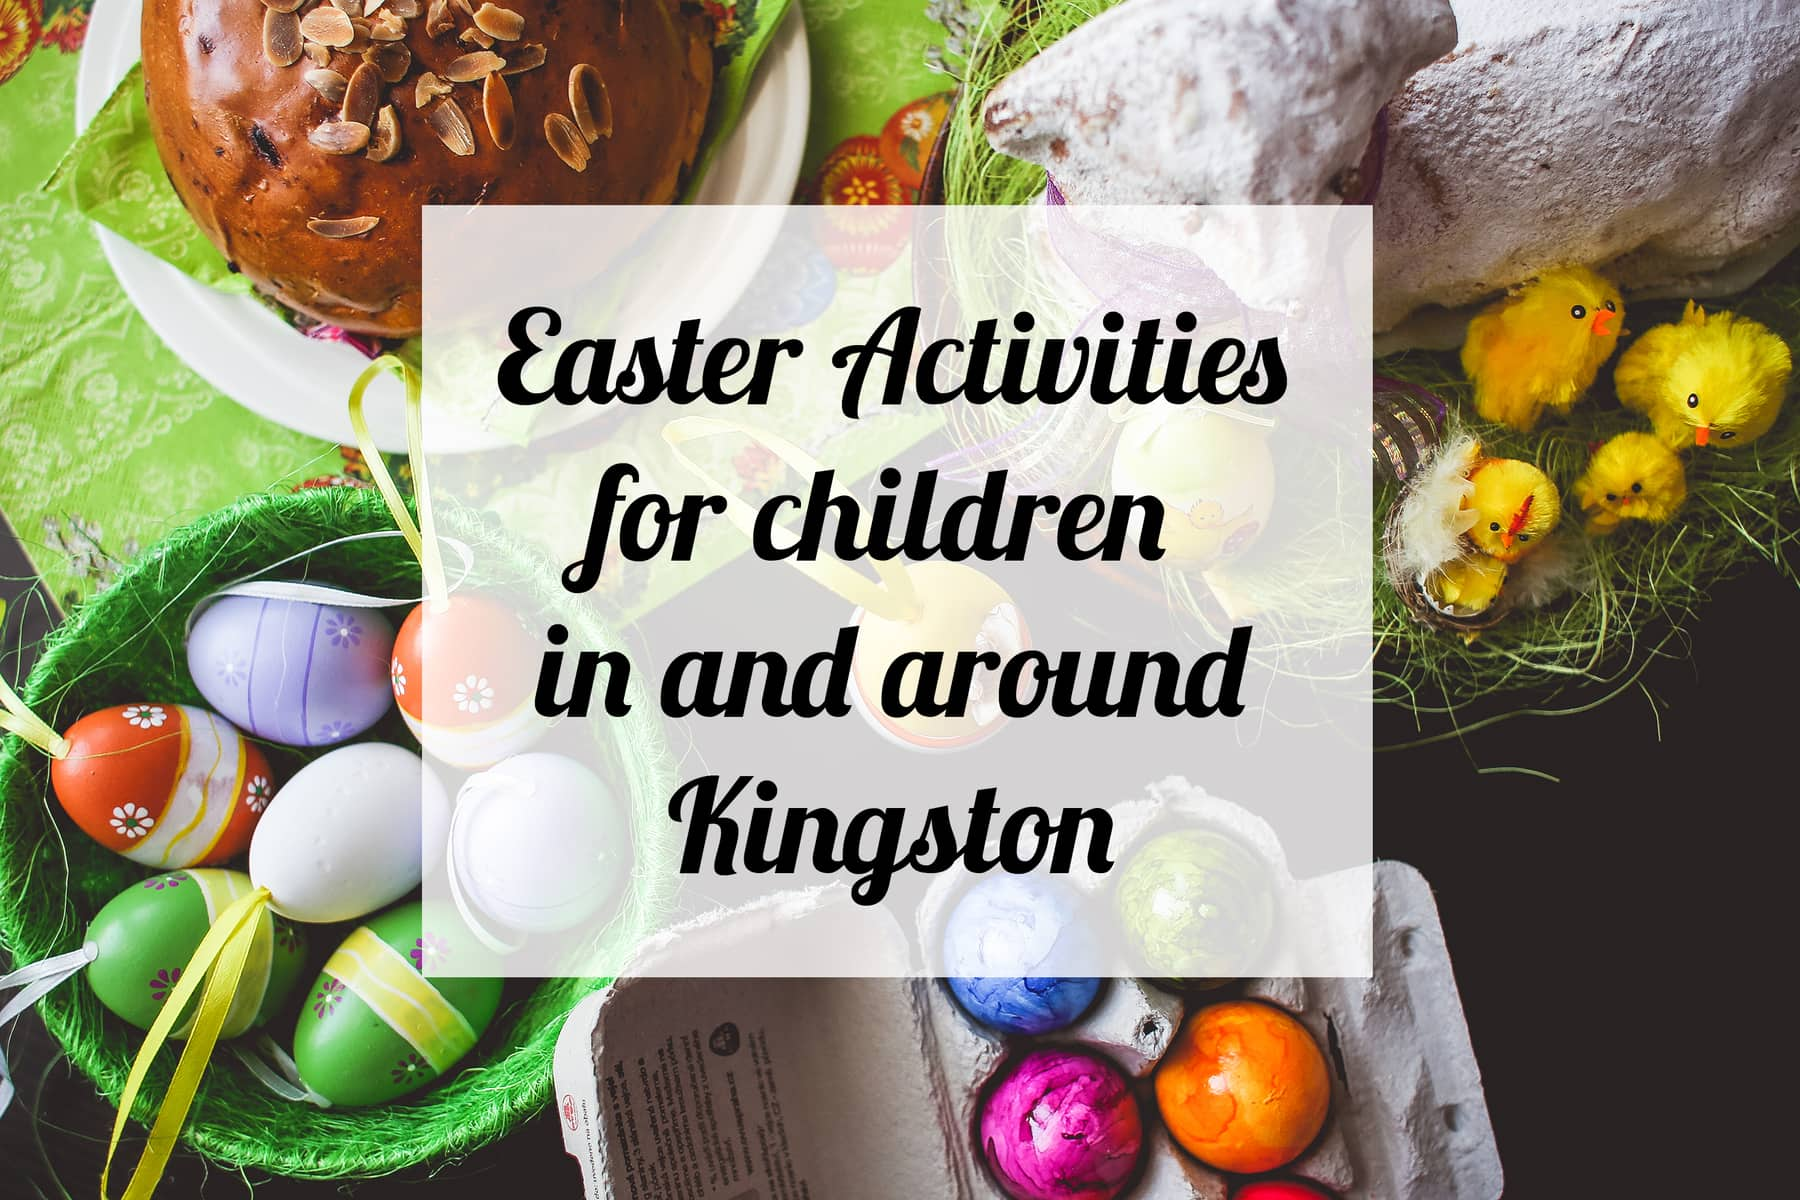 Easter Activities for children in and around Kingston